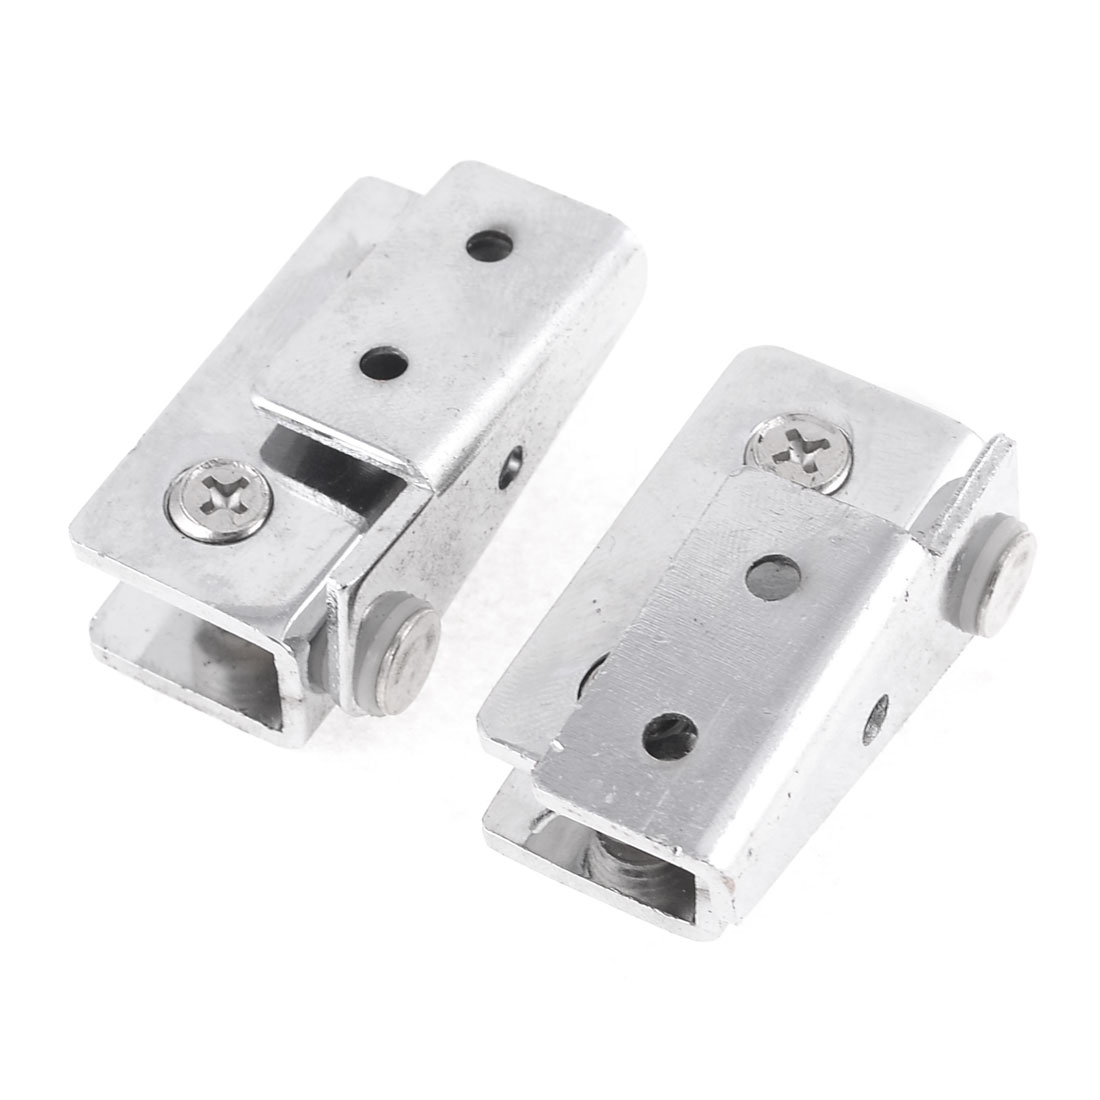 Replacement Metal Door Catch Hinge for 9mm Thickness Glass 2 Pcs